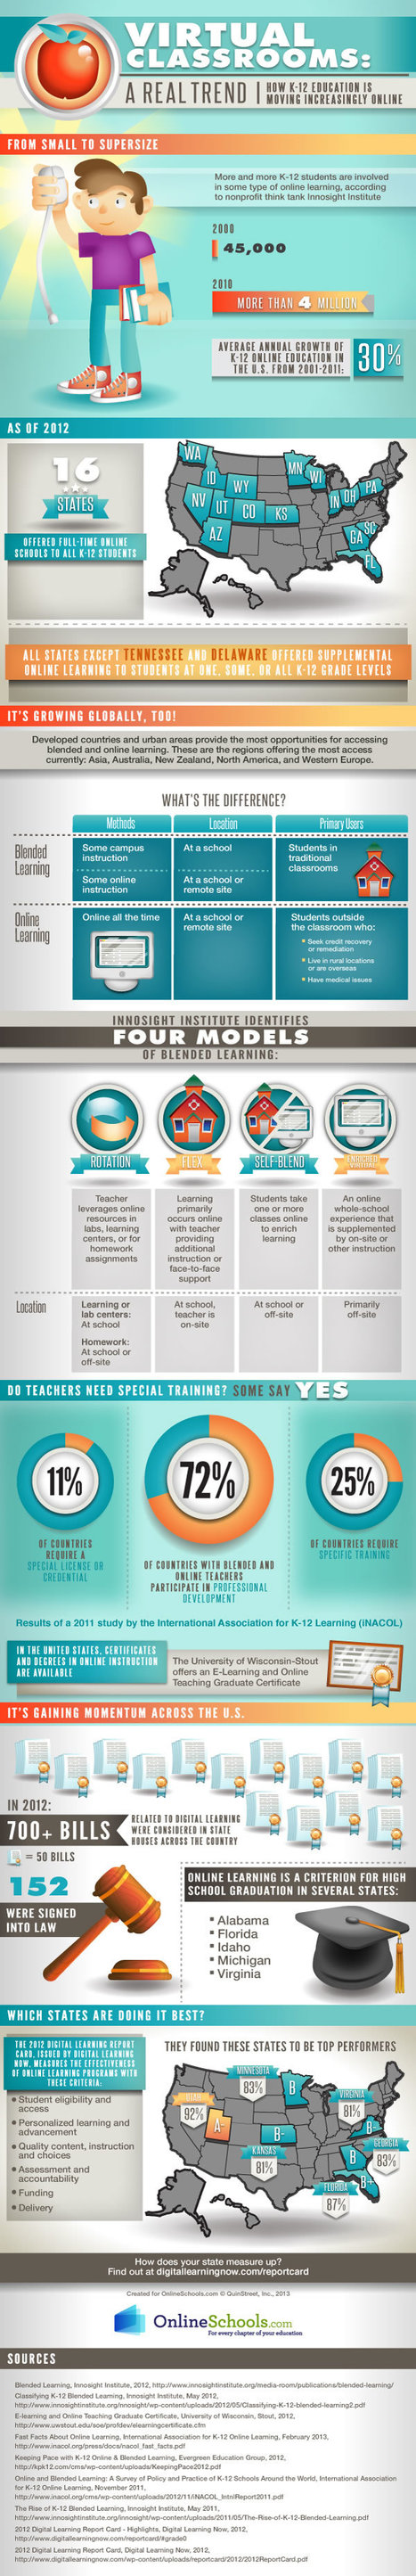 K-12 Distance Learning and Blended Learning: Trends on the Rise? | Infographics | Scoop.it